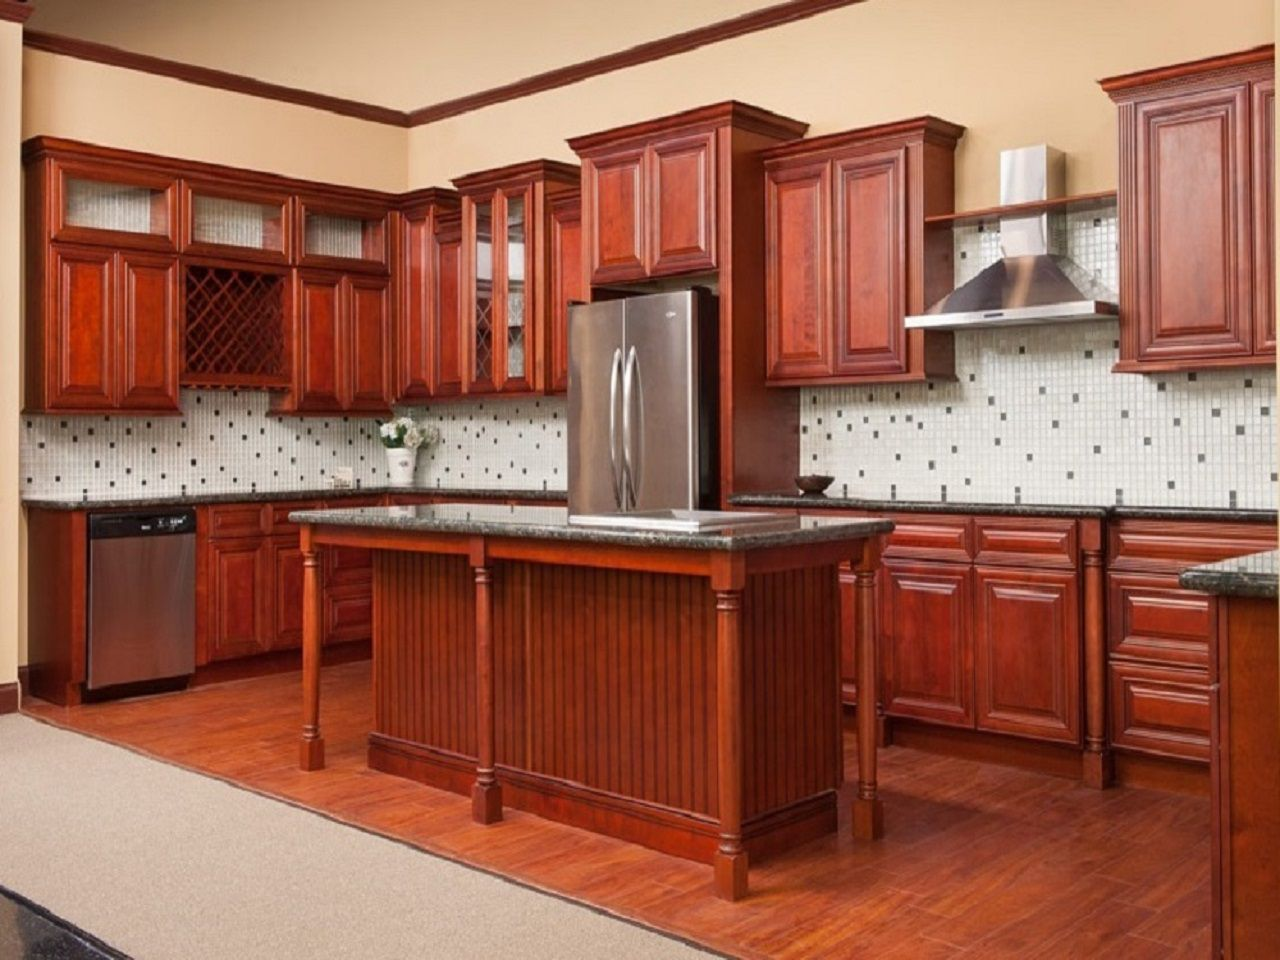 Gallery quebec kitchens for Kitchen cabinets quebec